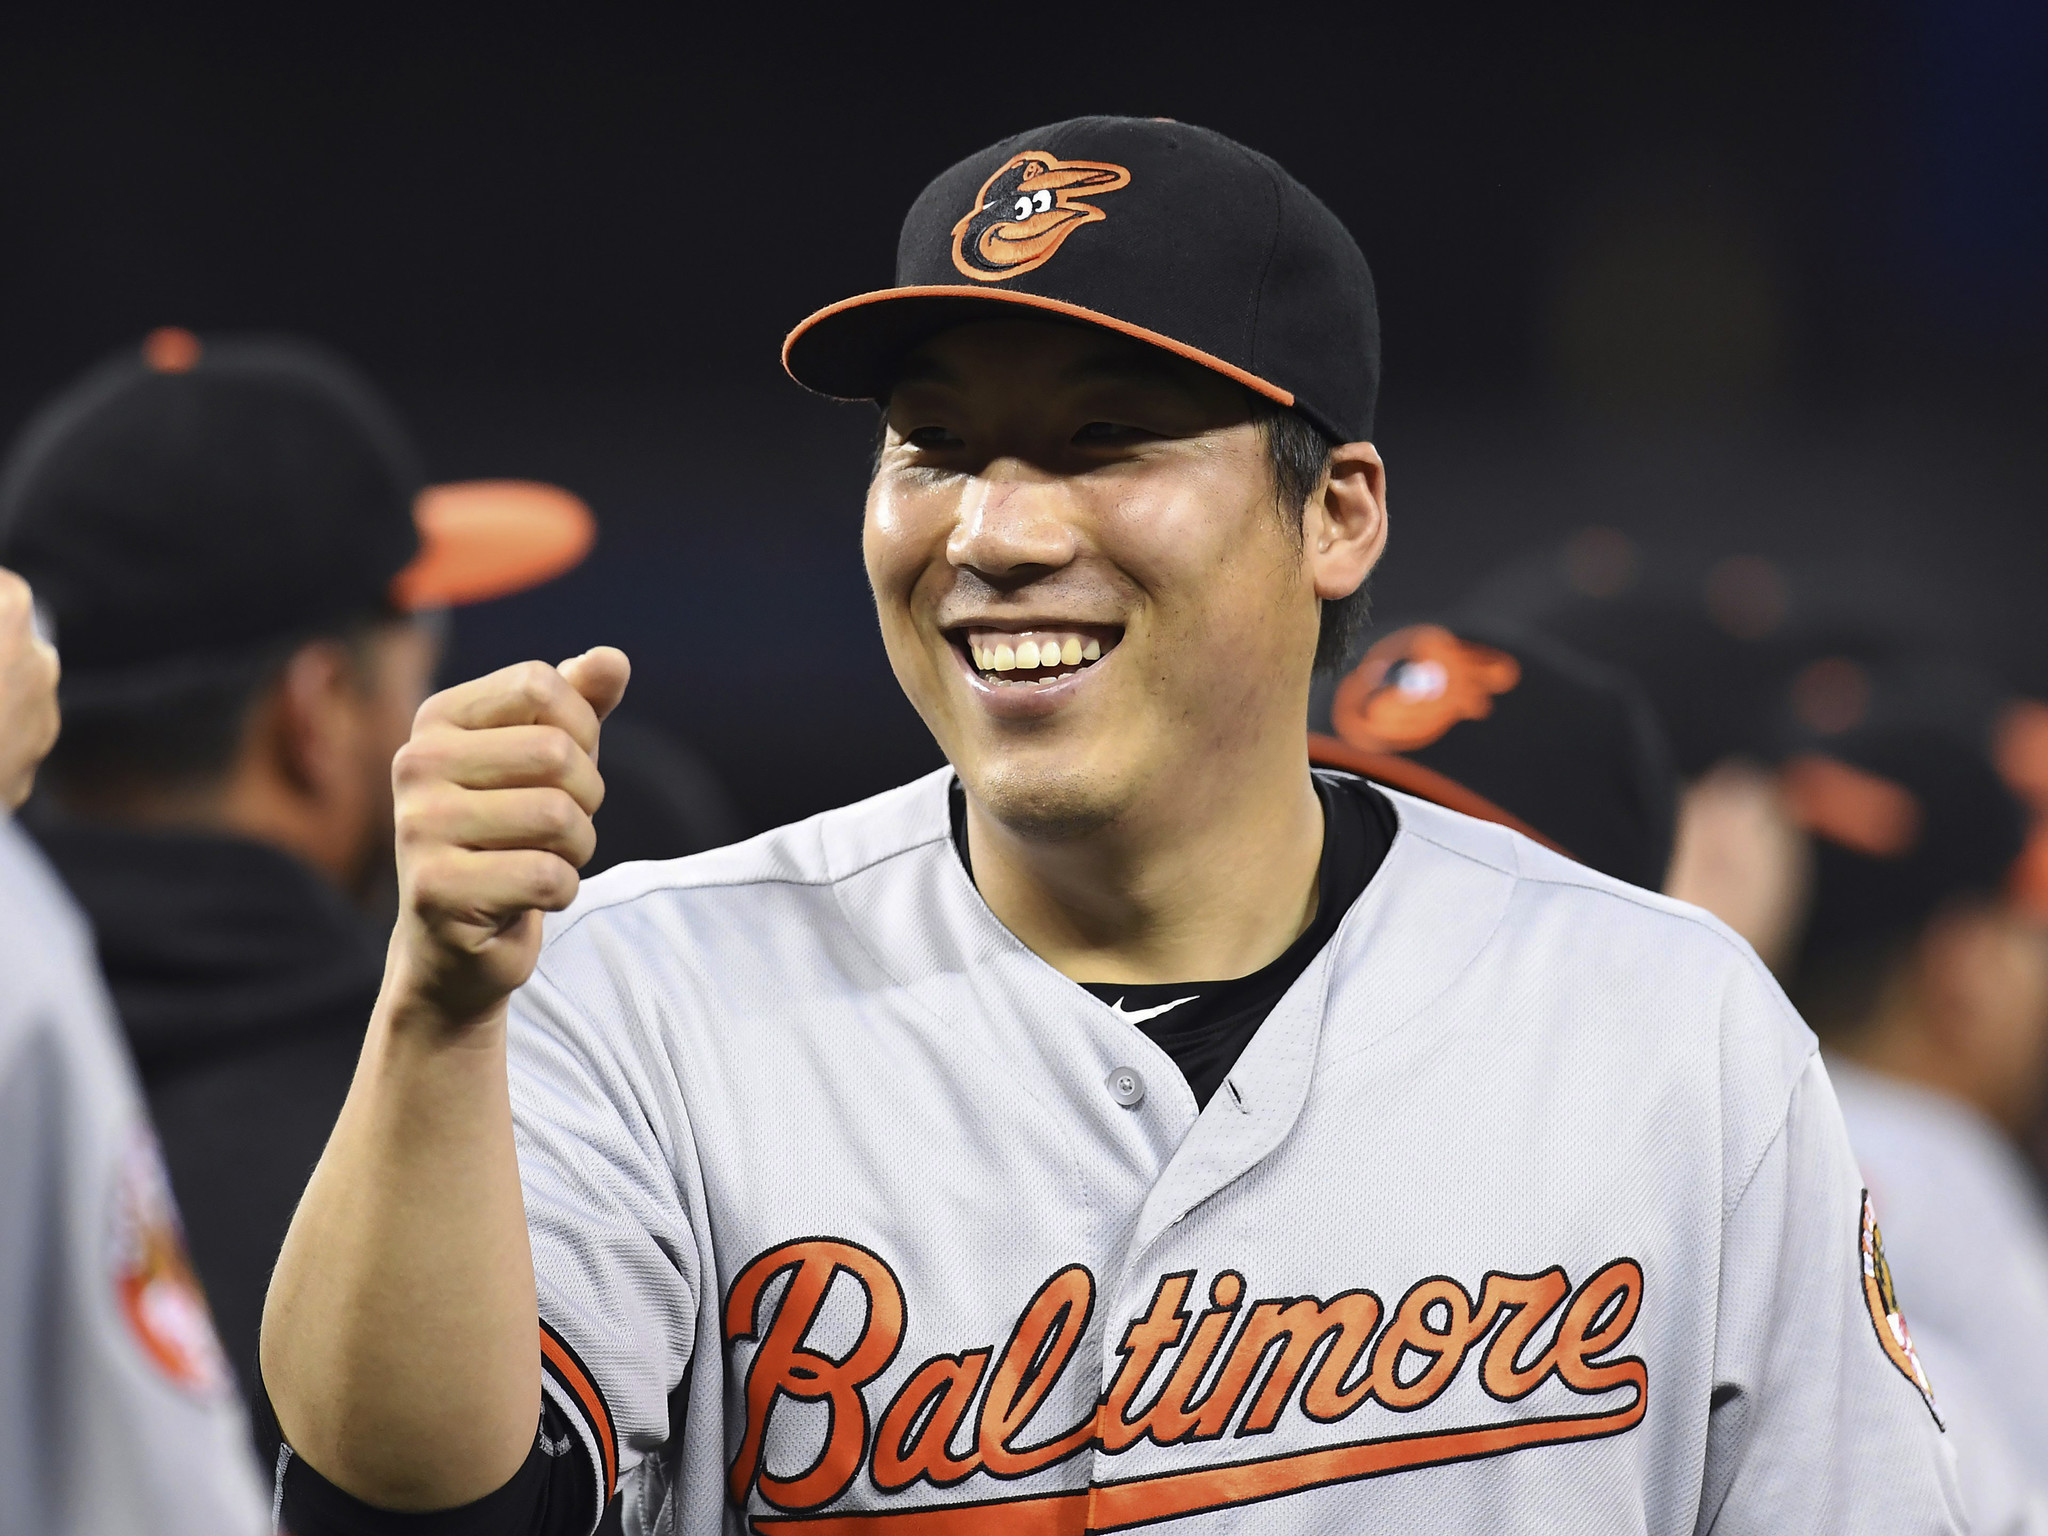 Bal-what-were-the-odds-hyun-soo-kim-and-ubaldo-jimenez-ermerge-as-late-season-heroes-20160930